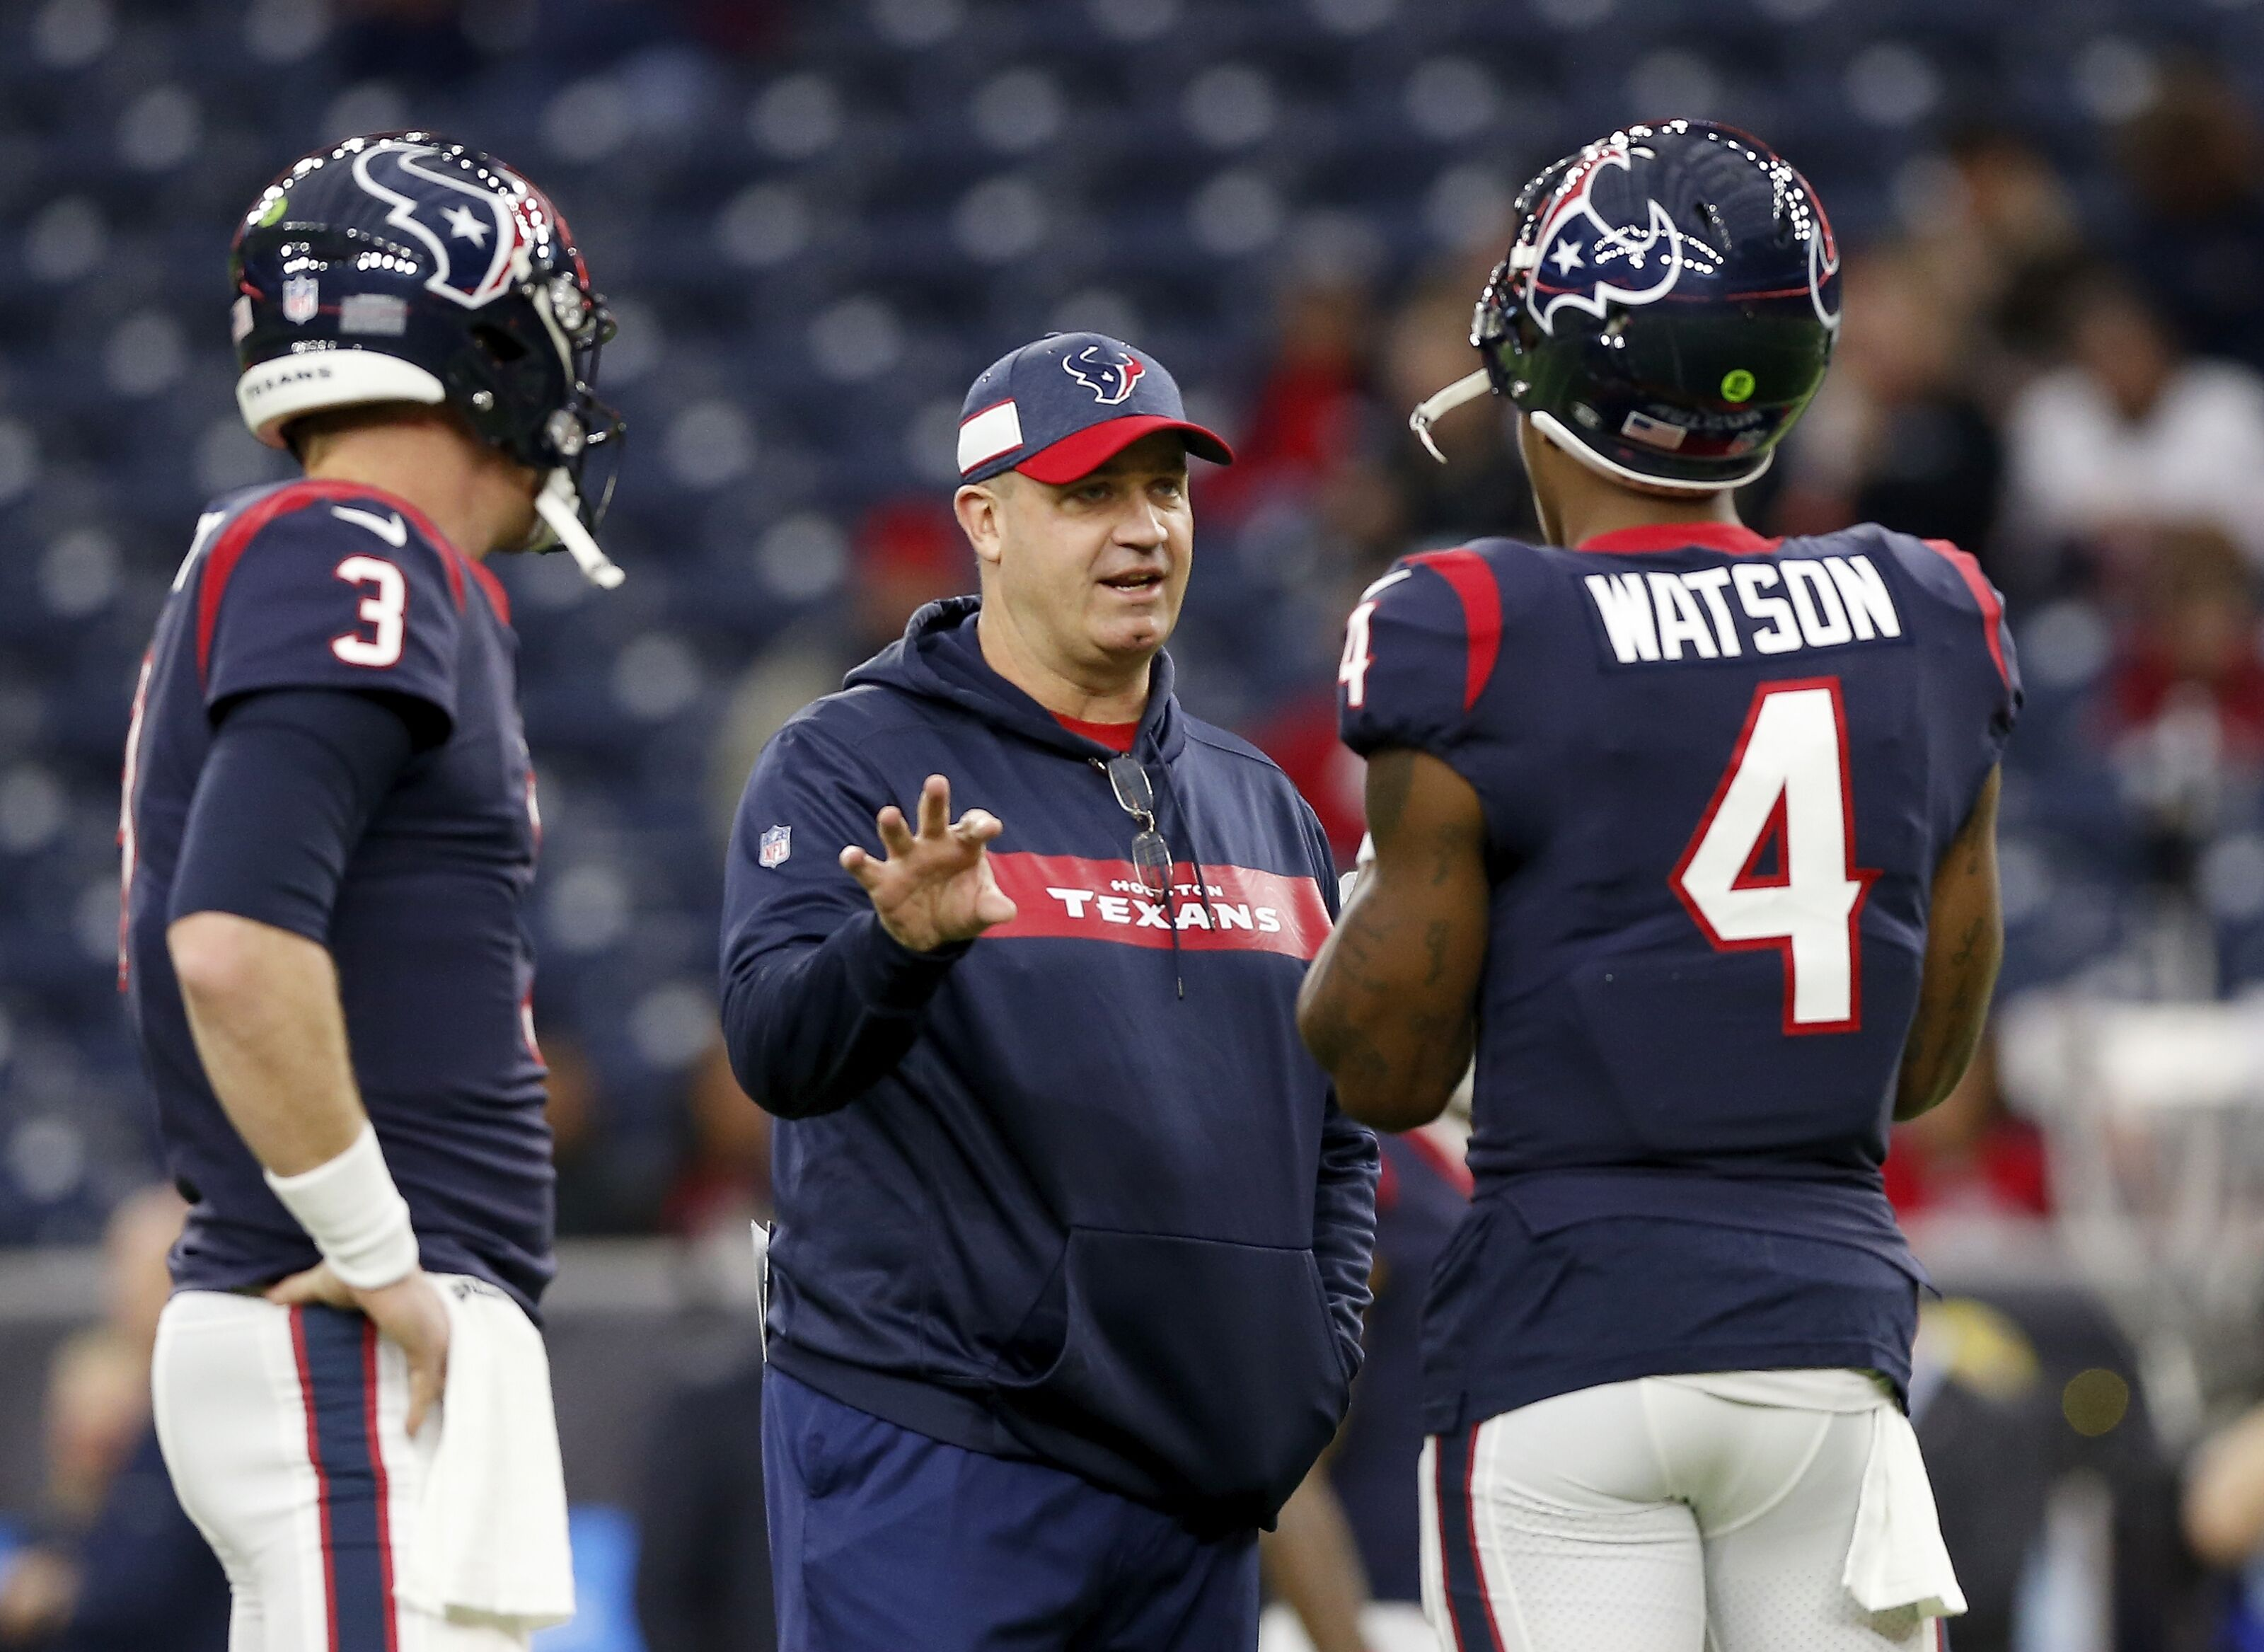 Houston Texans: Bill O'Brien ranked in lower half of NFL head coaches